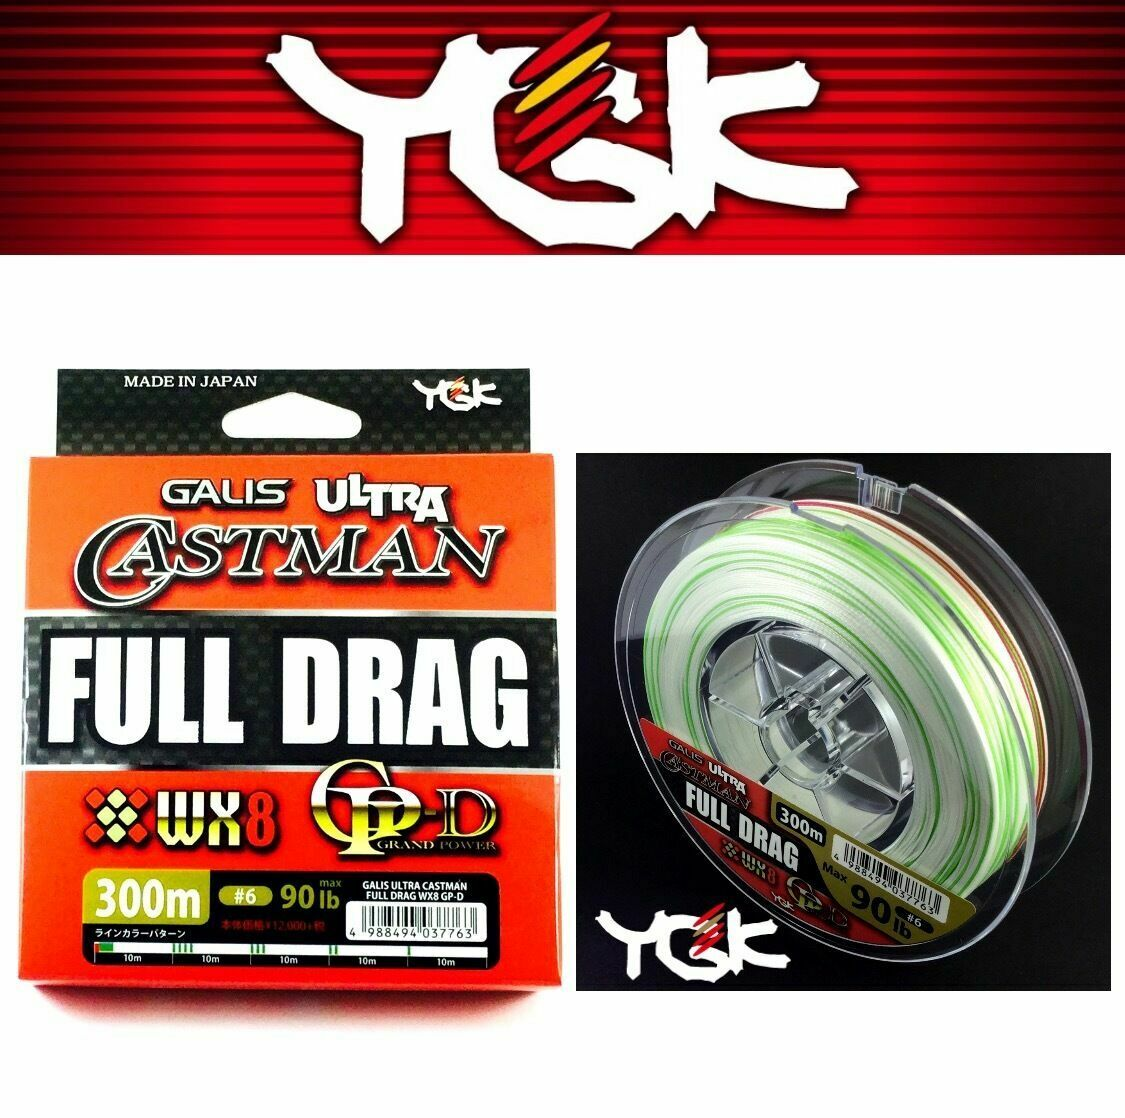 YGK Galis casting Braid Line wx8 ULTRA castuomo FULL DRAG 300m